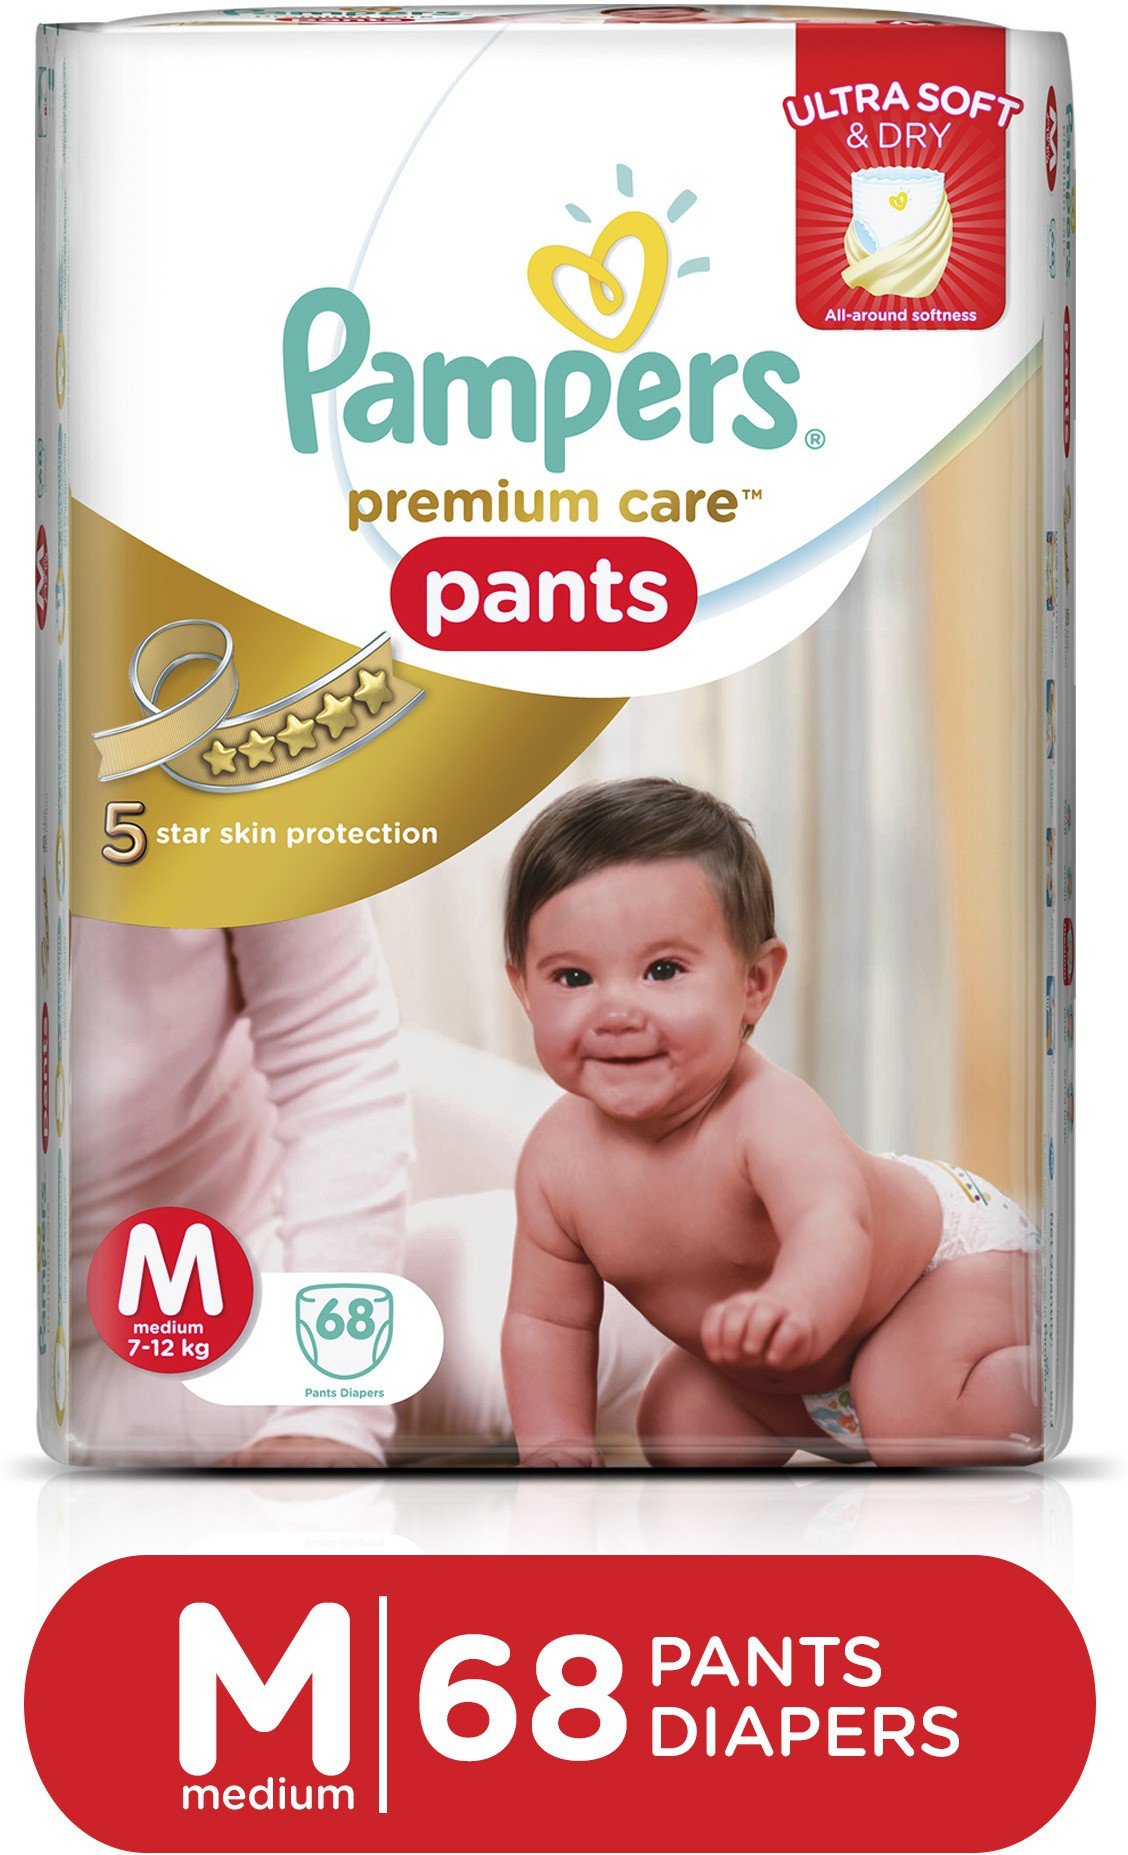 Deals - Delhi - Baby Care <br> Diapers, Baby Creams...<br> Category - baby_care<br> Business - Flipkart.com